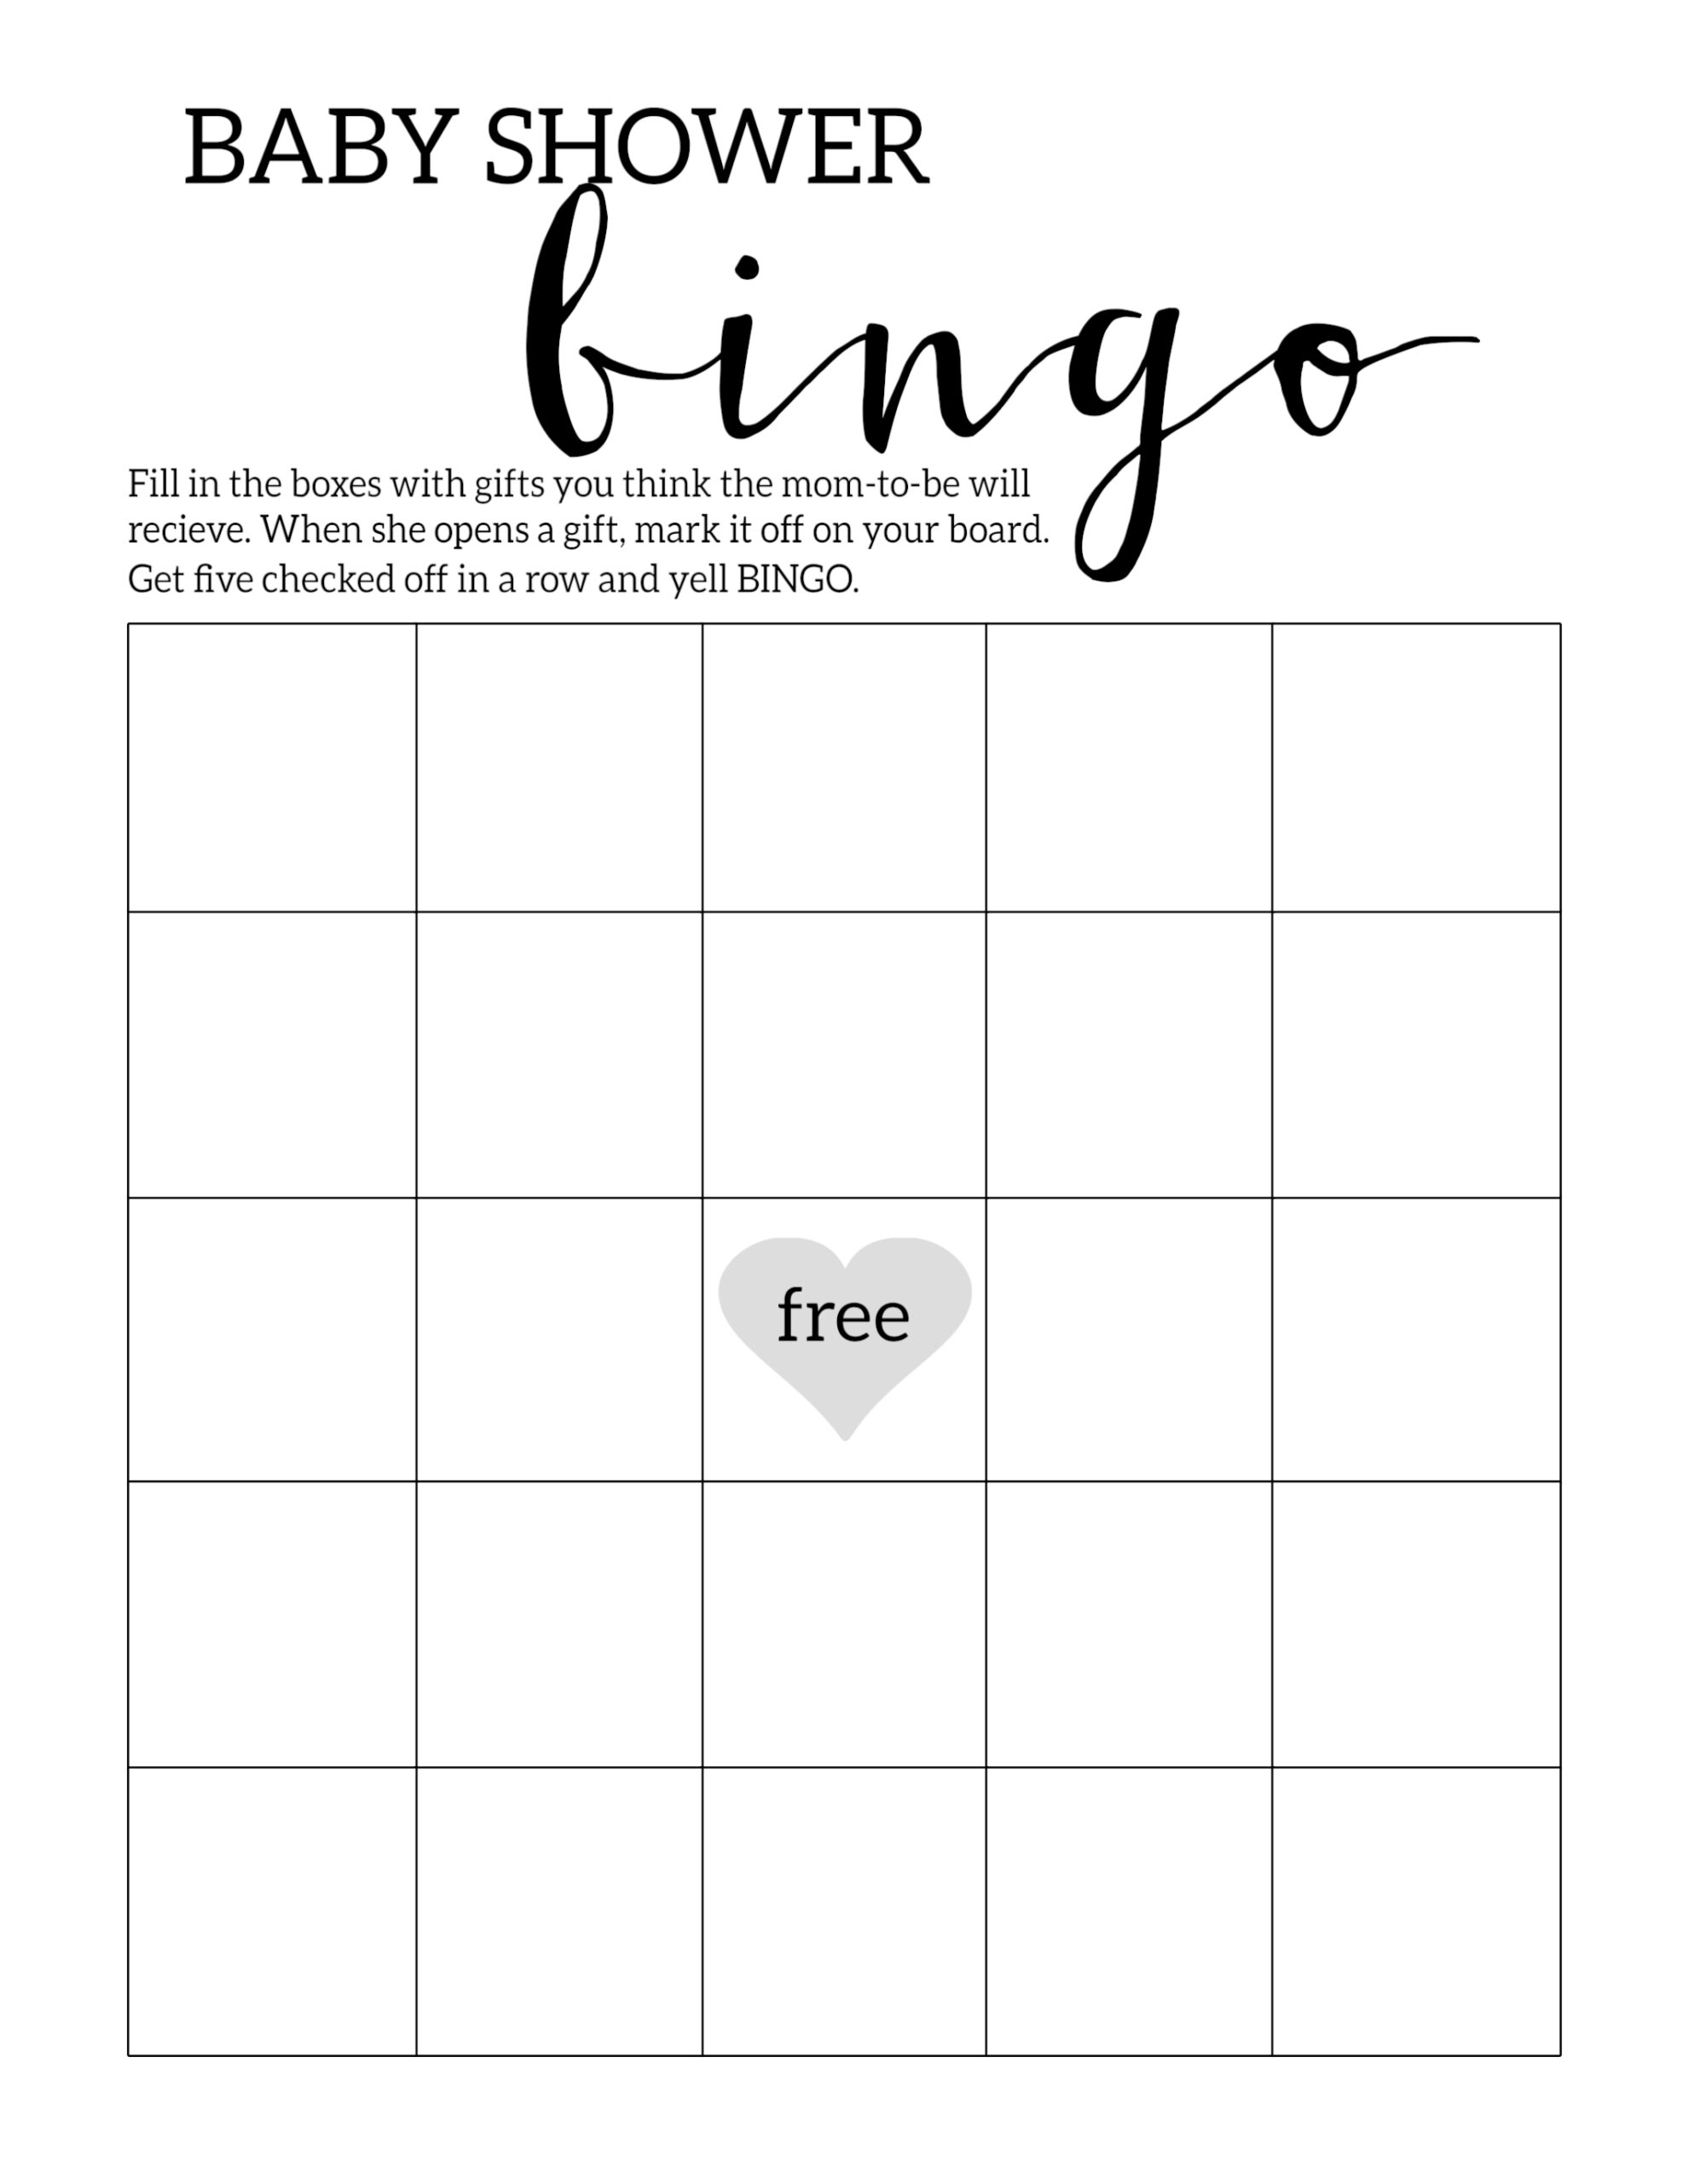 image relating to Baby Shower Bingo Cards Printable named Child Shower Bingo Printable Playing cards Template - Paper Path Structure